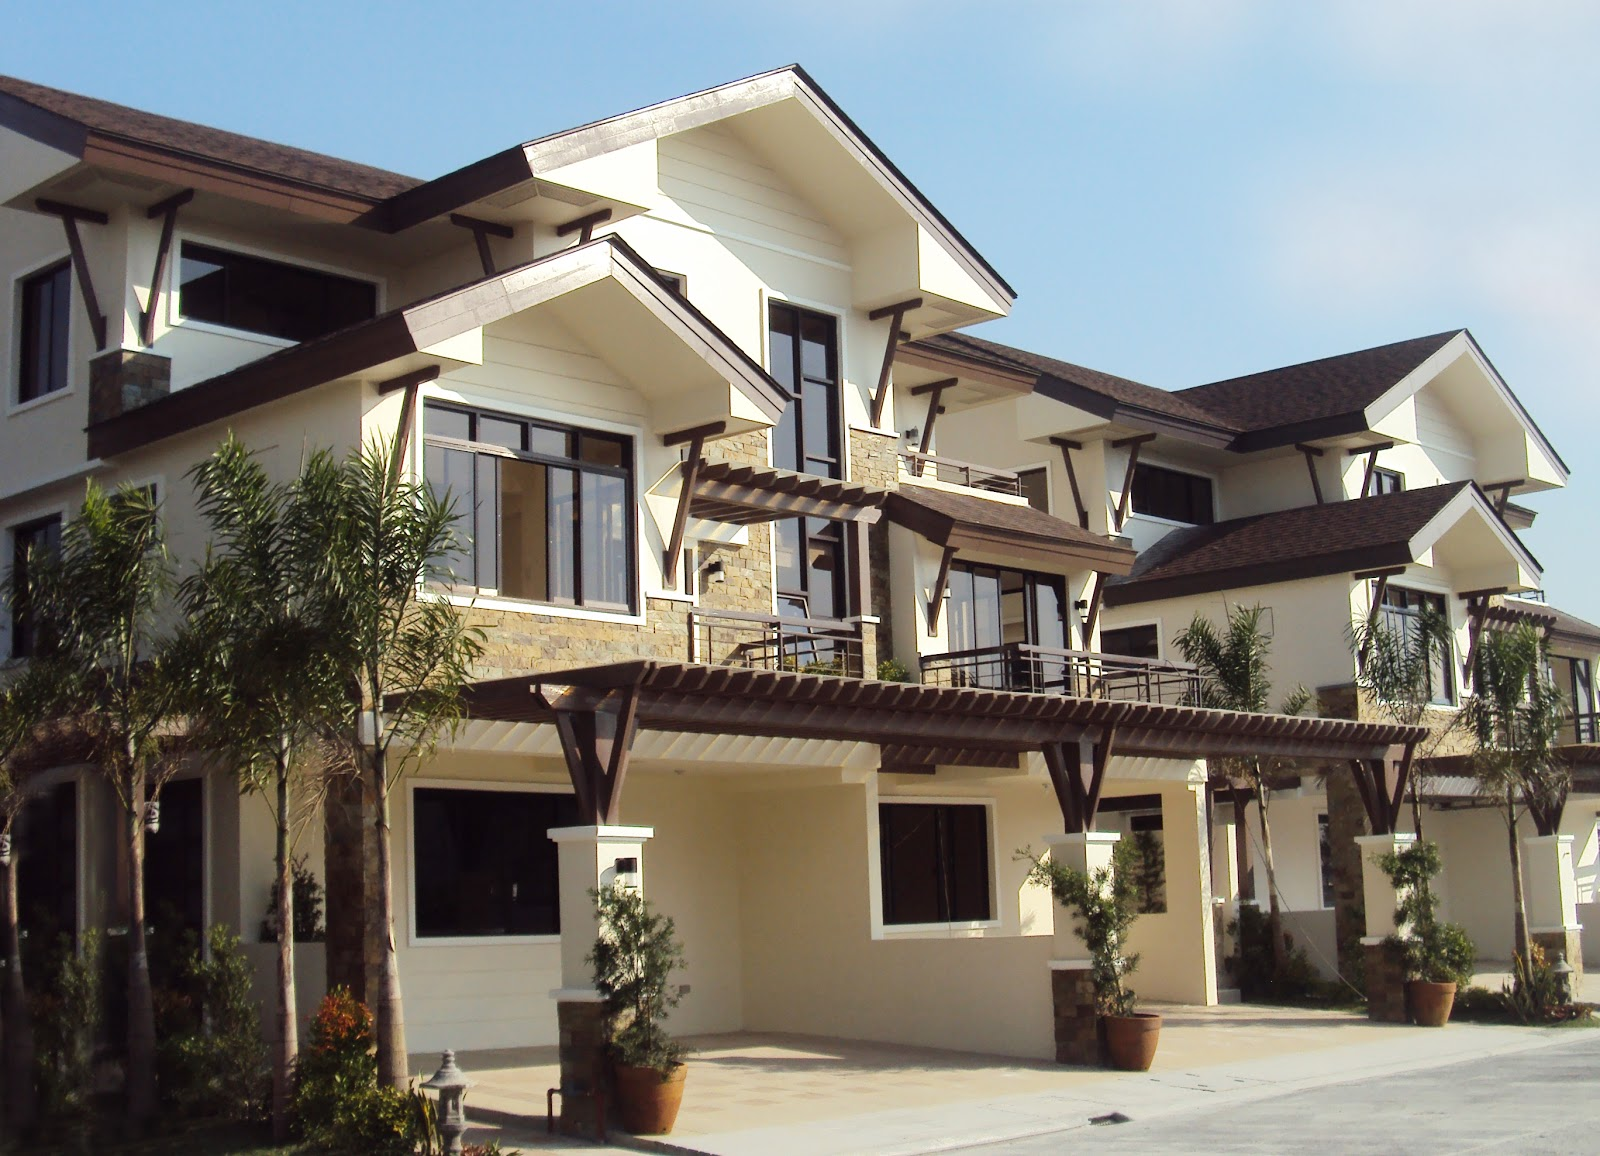 Dmci 39 s best dream house in the philippines house design for Pictures of two story houses in the philippines